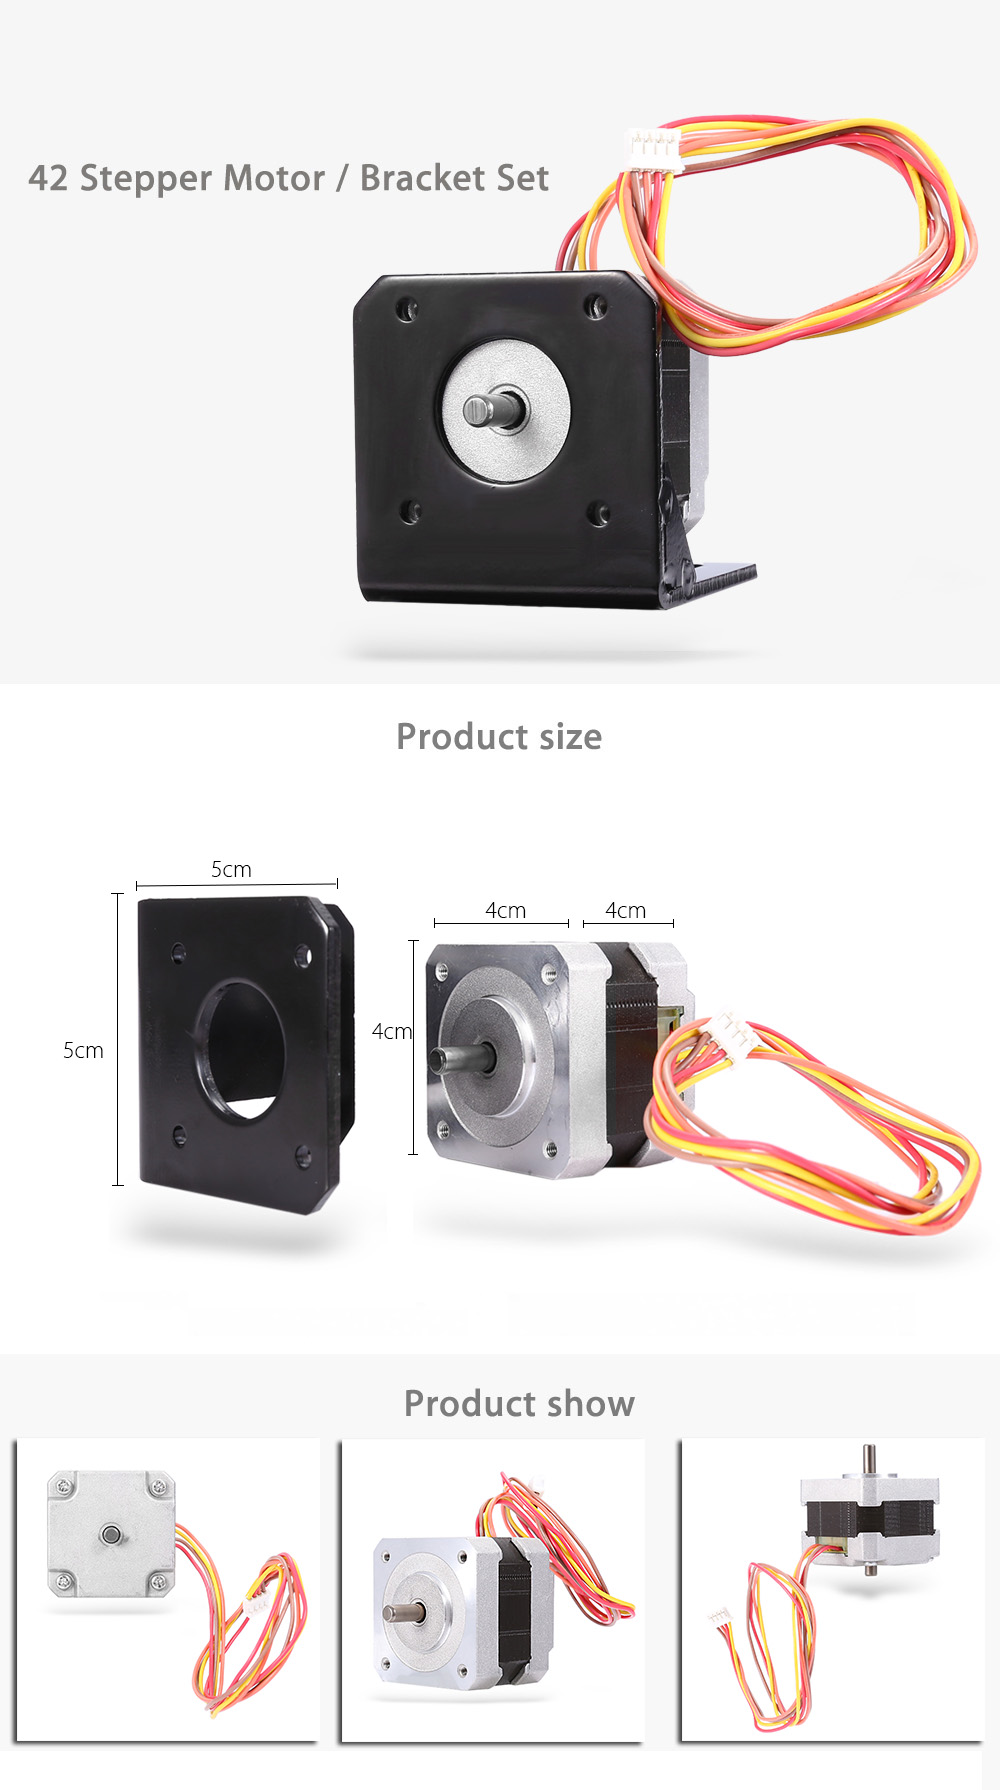 0.8A 1.8 Degree 42Stepper Motor Two-phase with Bracket Set for 3D Printer / Engraving Machine